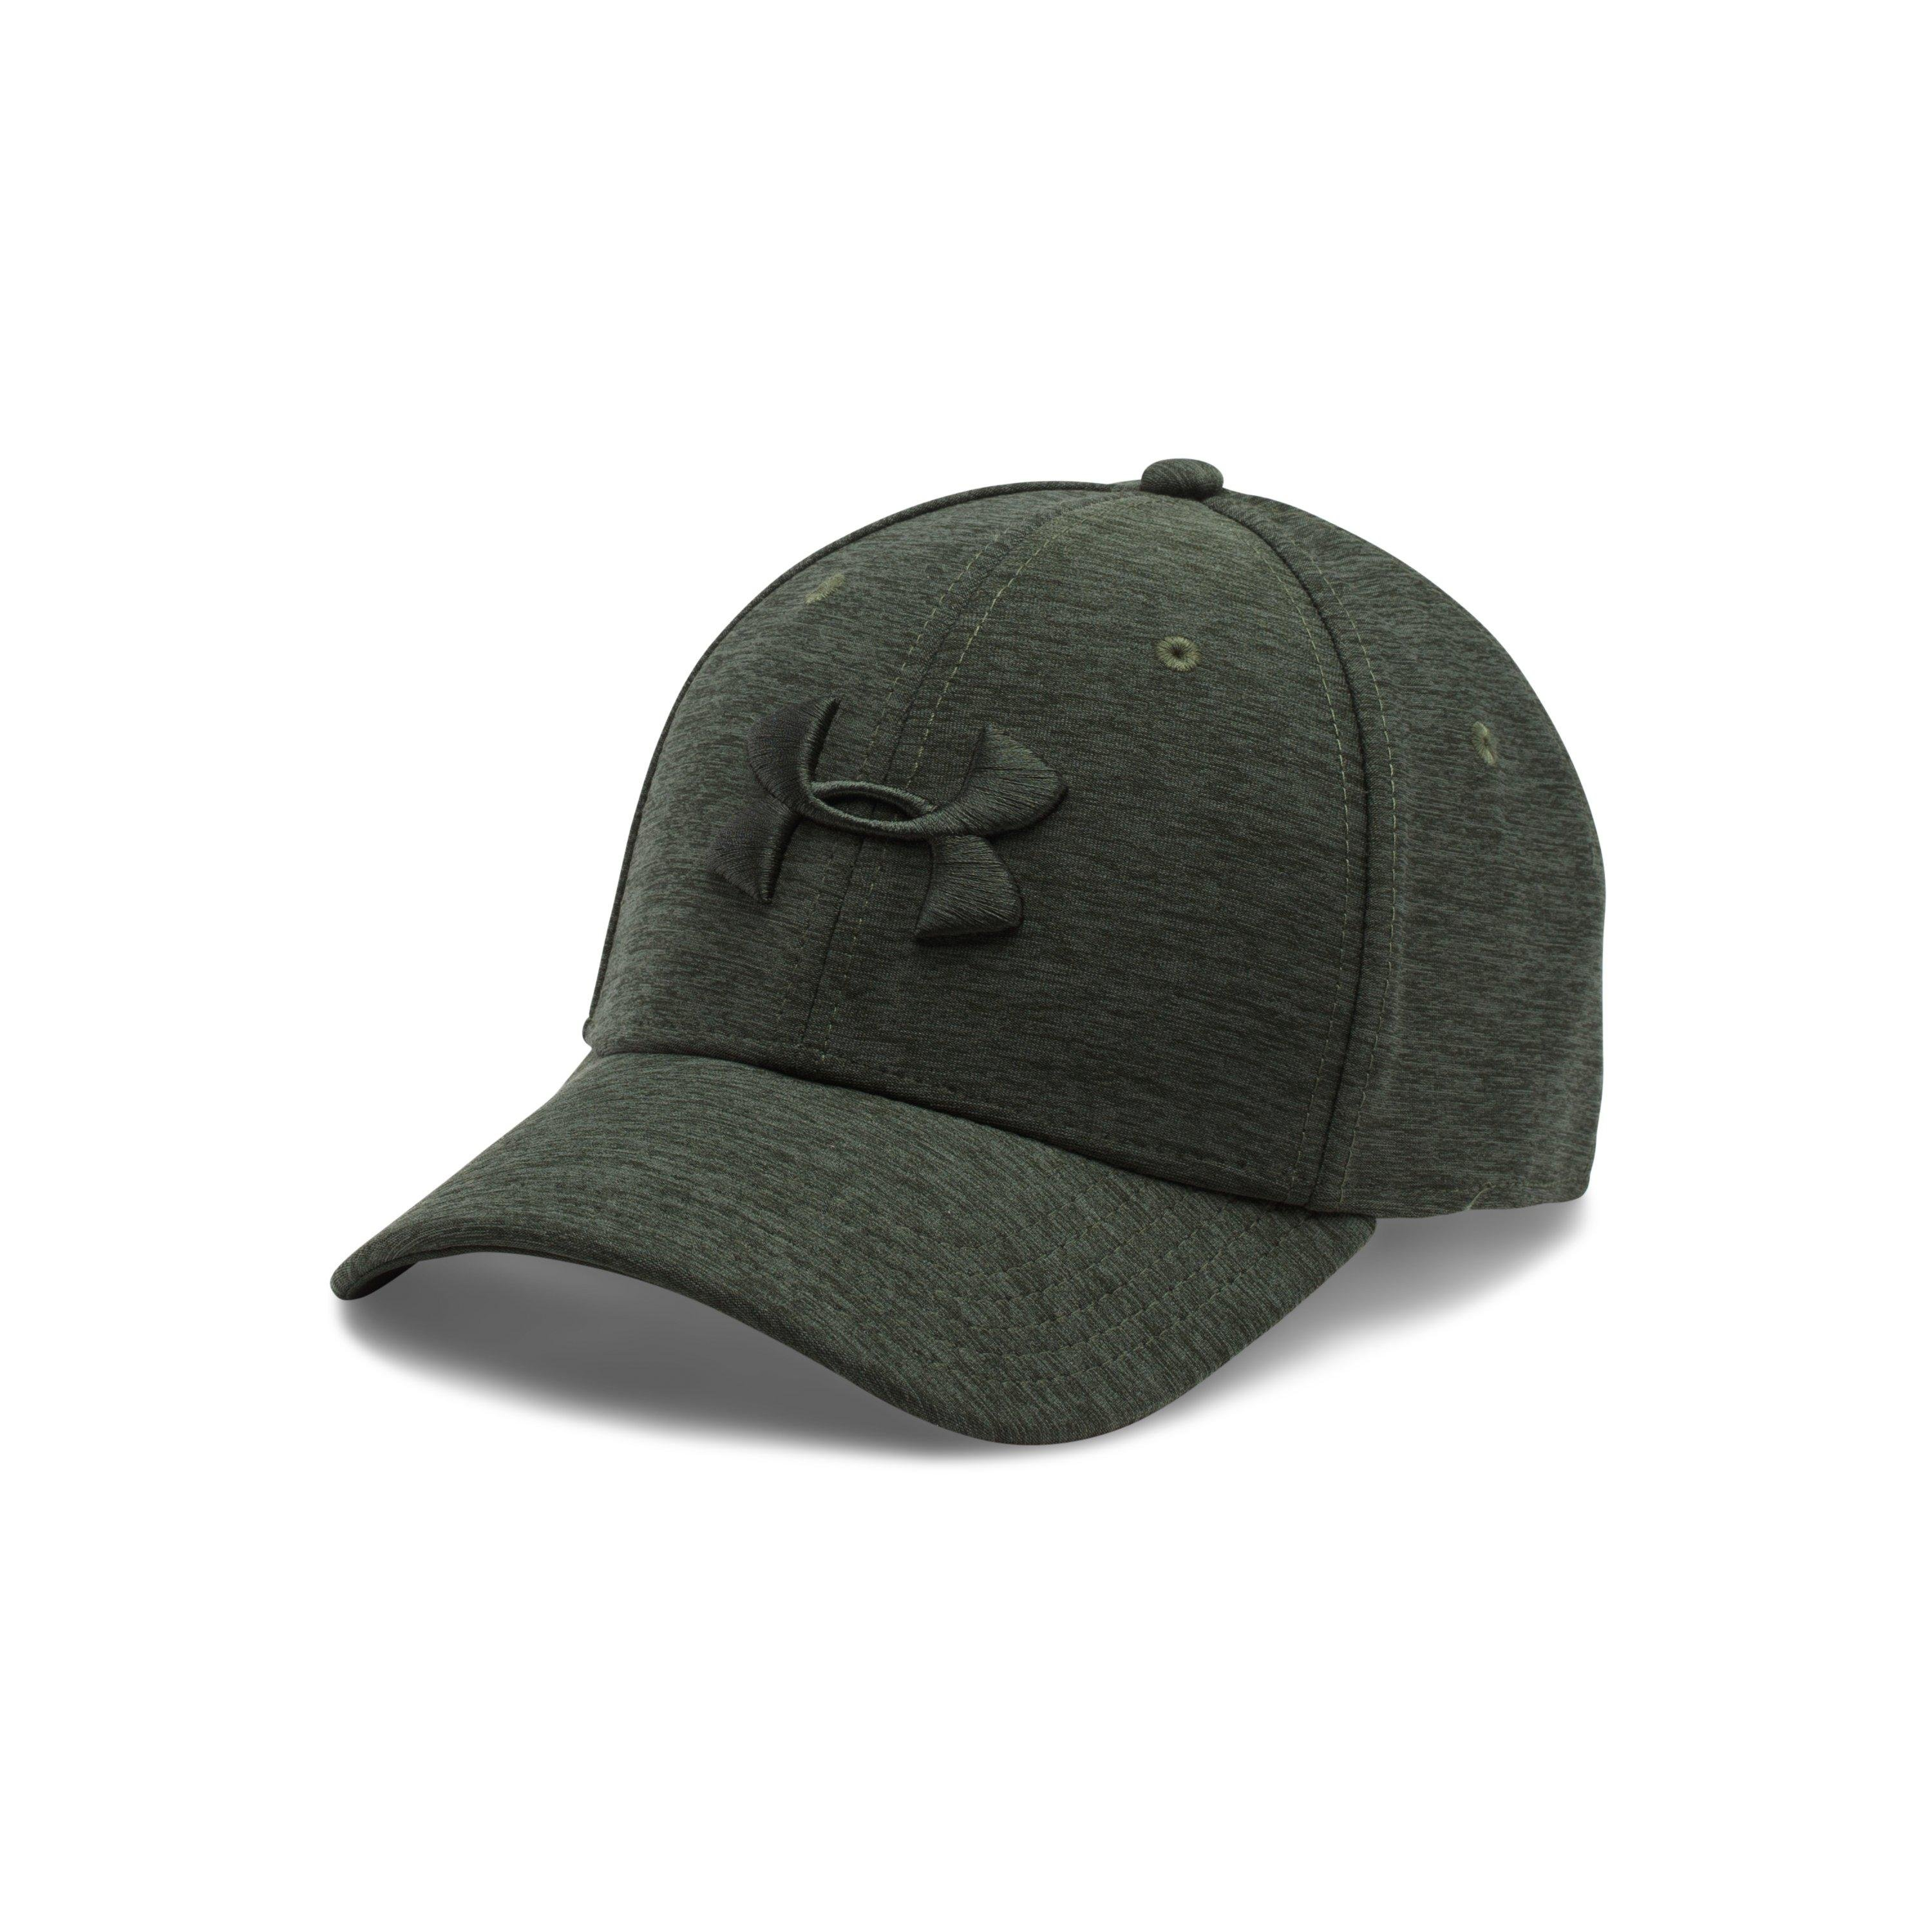 bbd83fab2 netherlands under armour hat green ef5b0 e1c48